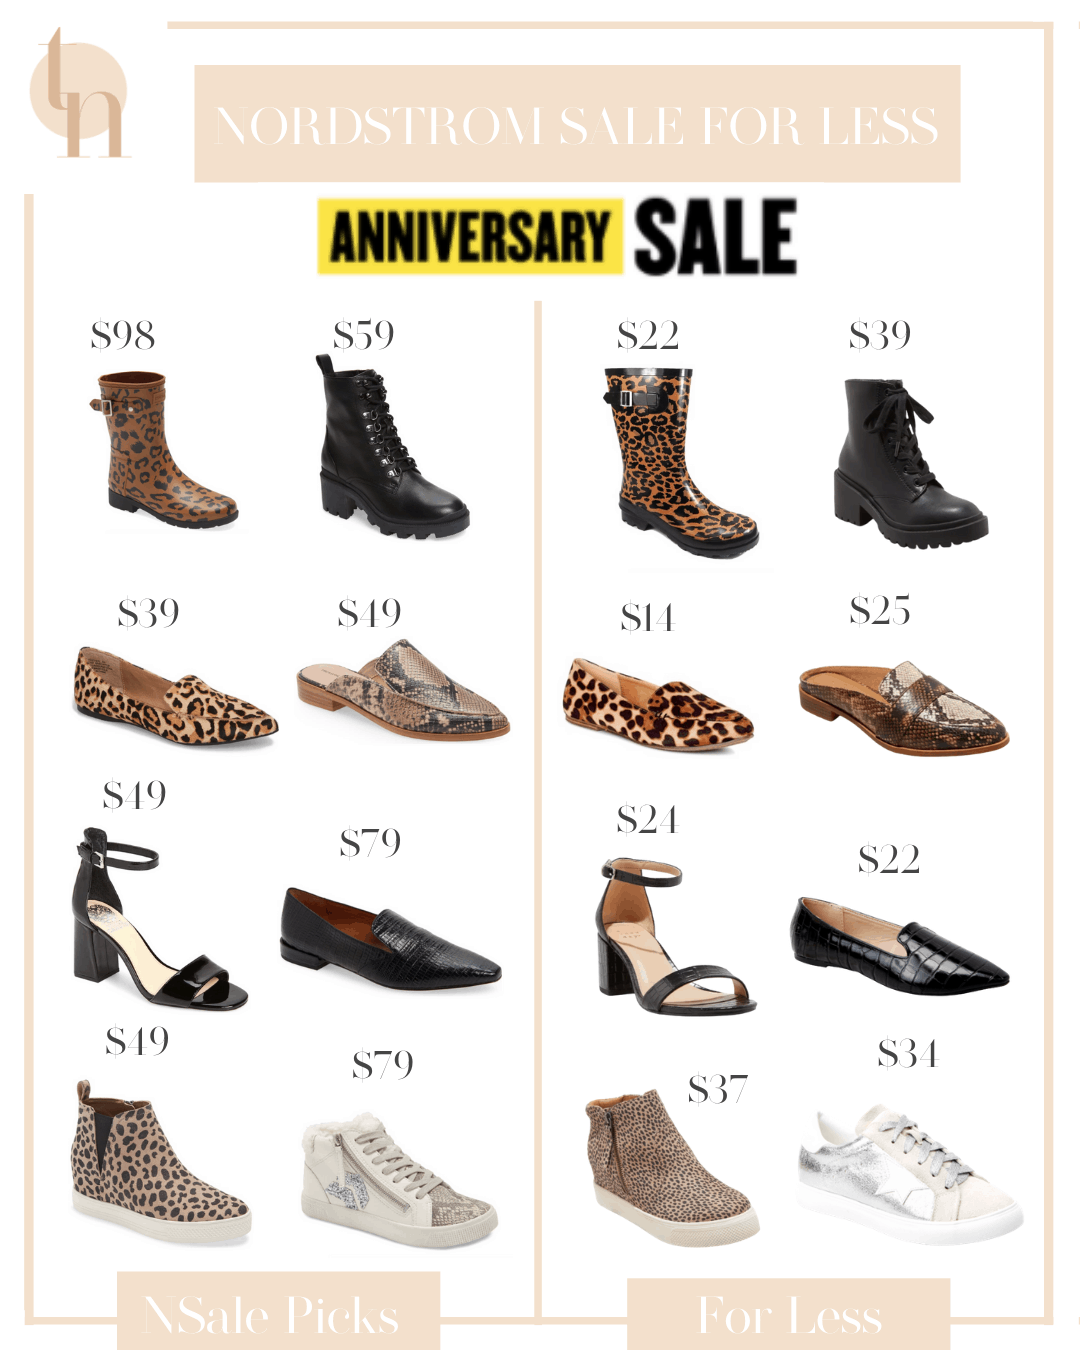 Nordstrom Anniversary Sale by popular Dallas fashion blog, Glamorous Versatility: collage image of leopard print rain boots, black heel combat boots, leopard print mules, snake skin mules, black ankle strap sandals, black loafers, leopard print sneakers, and white sneakers.